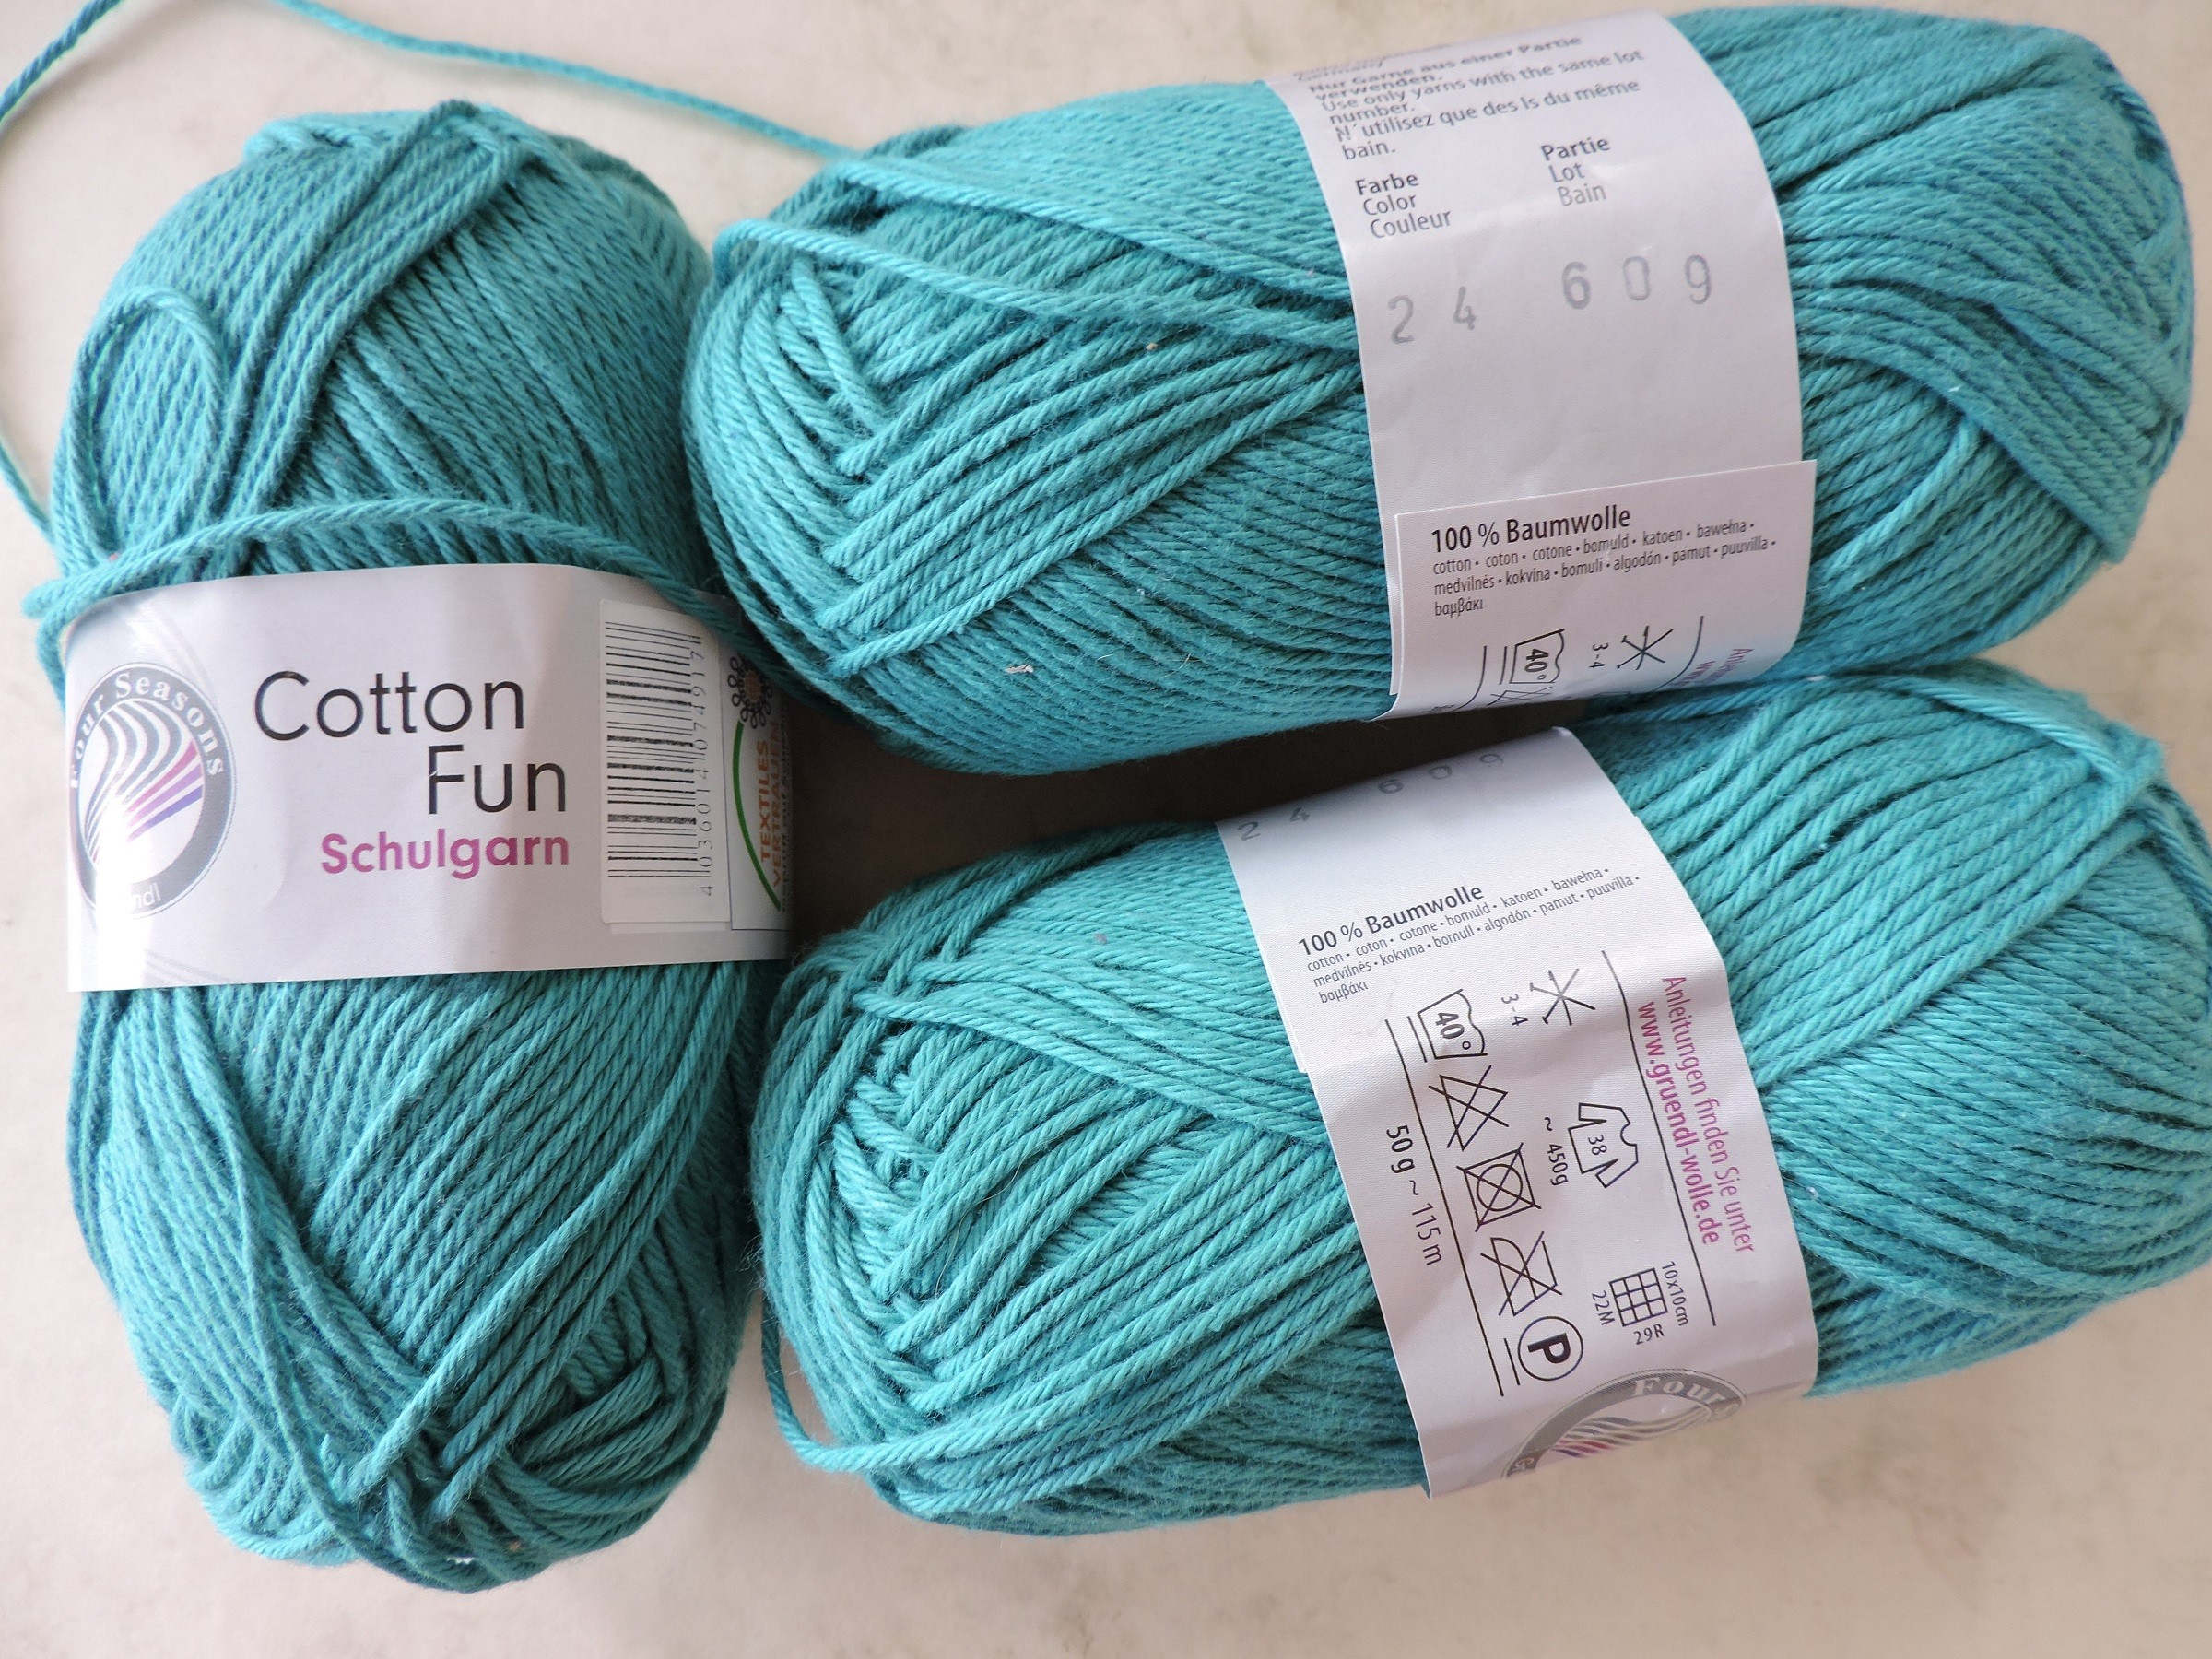 Cotton Fun Schulgarn lõng